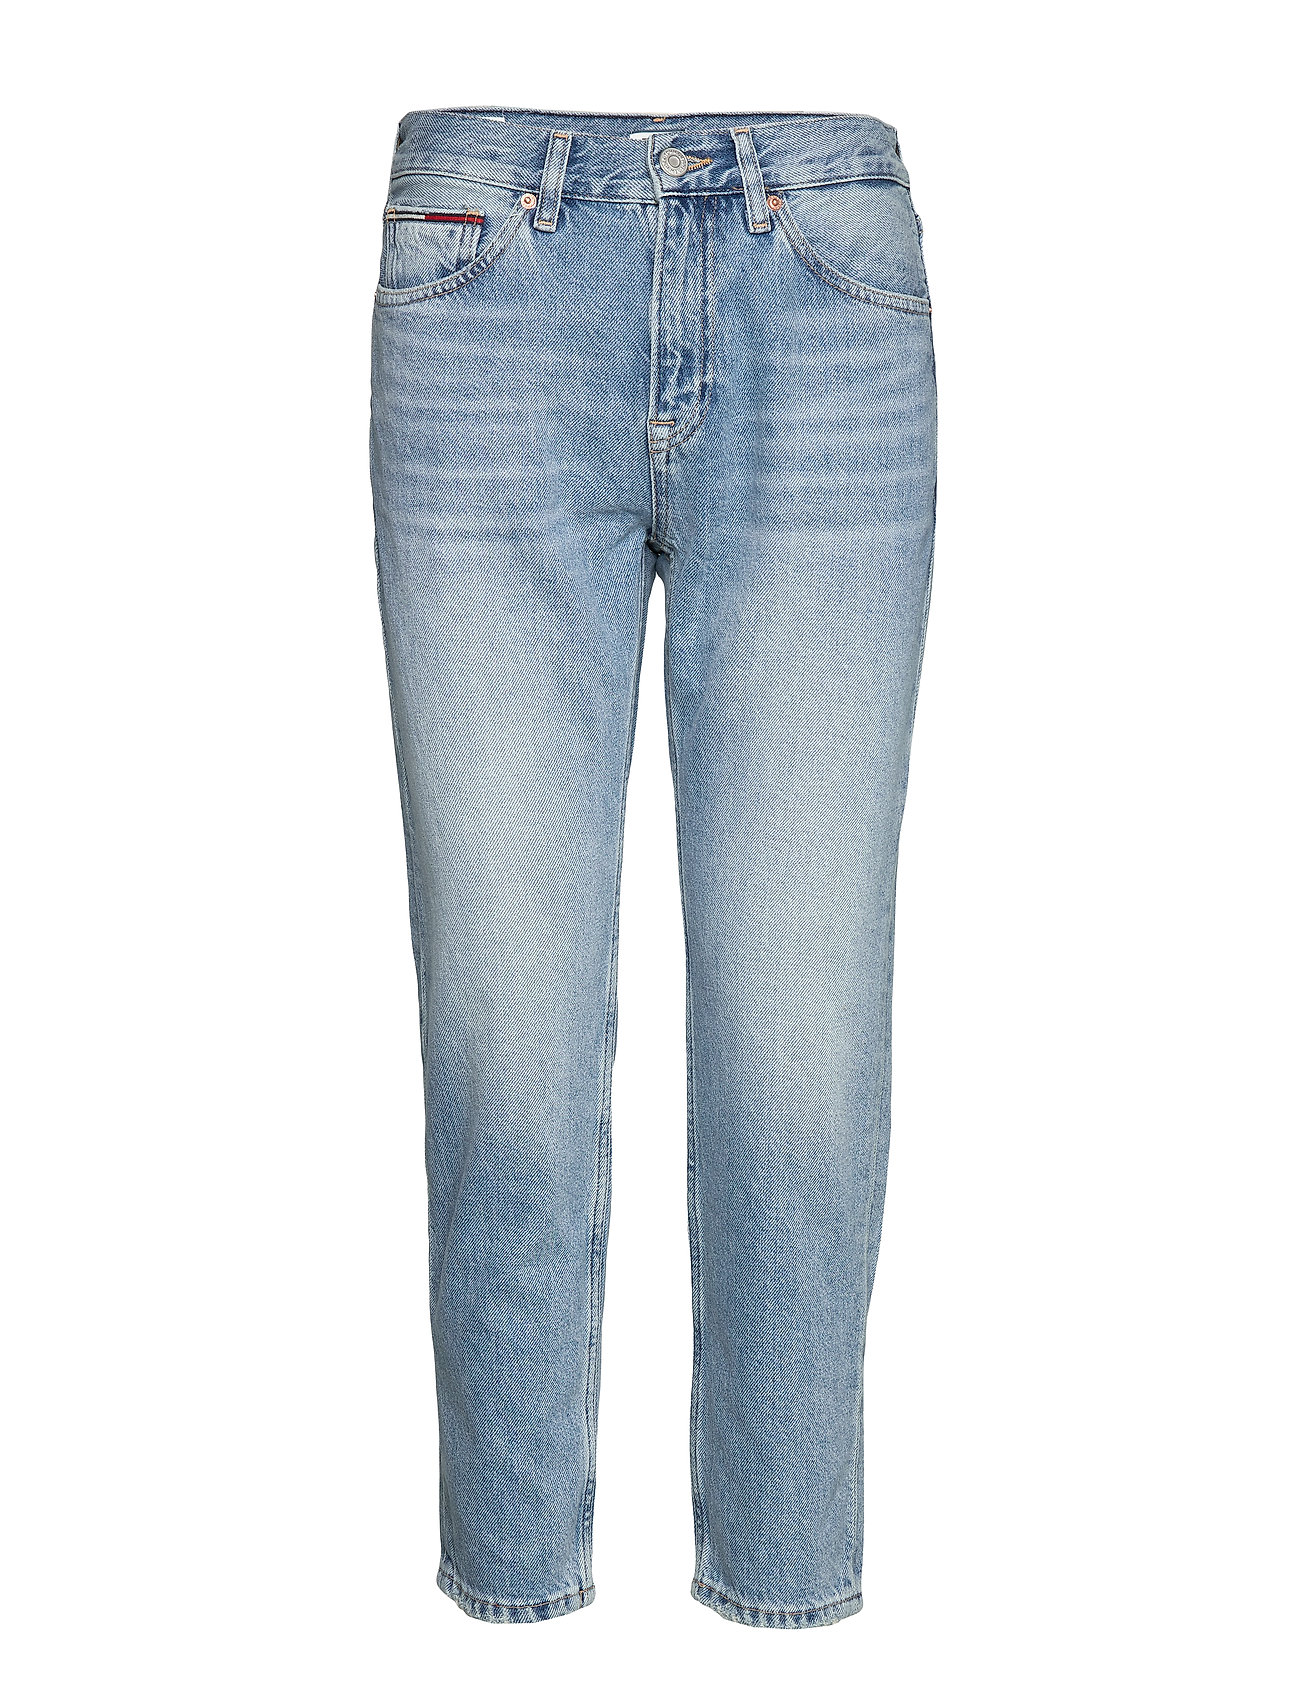 Tommy Jeans IZZY HIGH RISE SLIM ANKLE SNDL - SUNDAY LT BL RIG